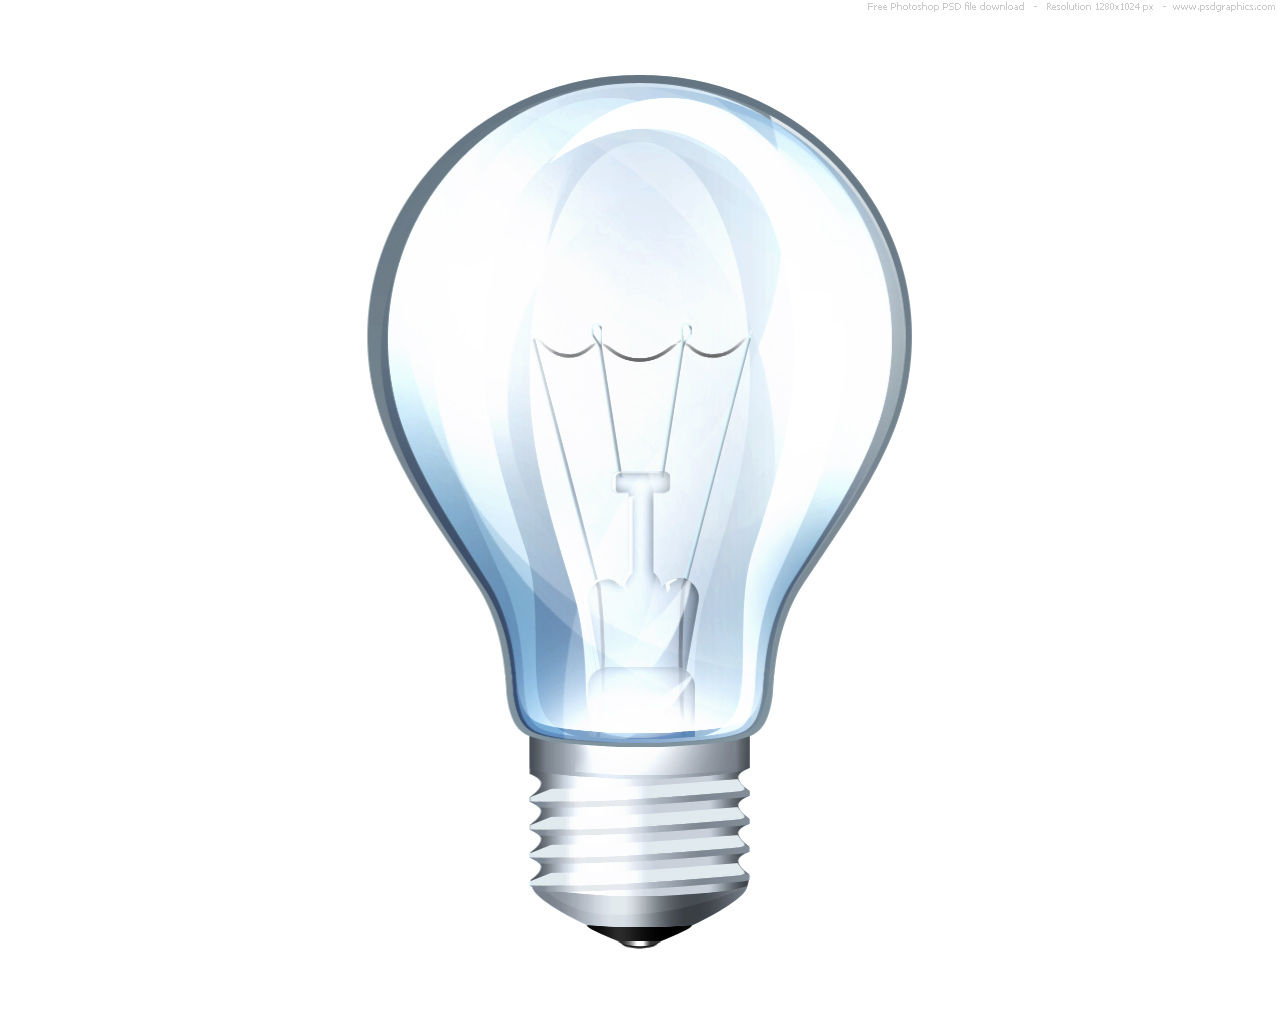 Psd light bulb icon psdgraphics A light bulb